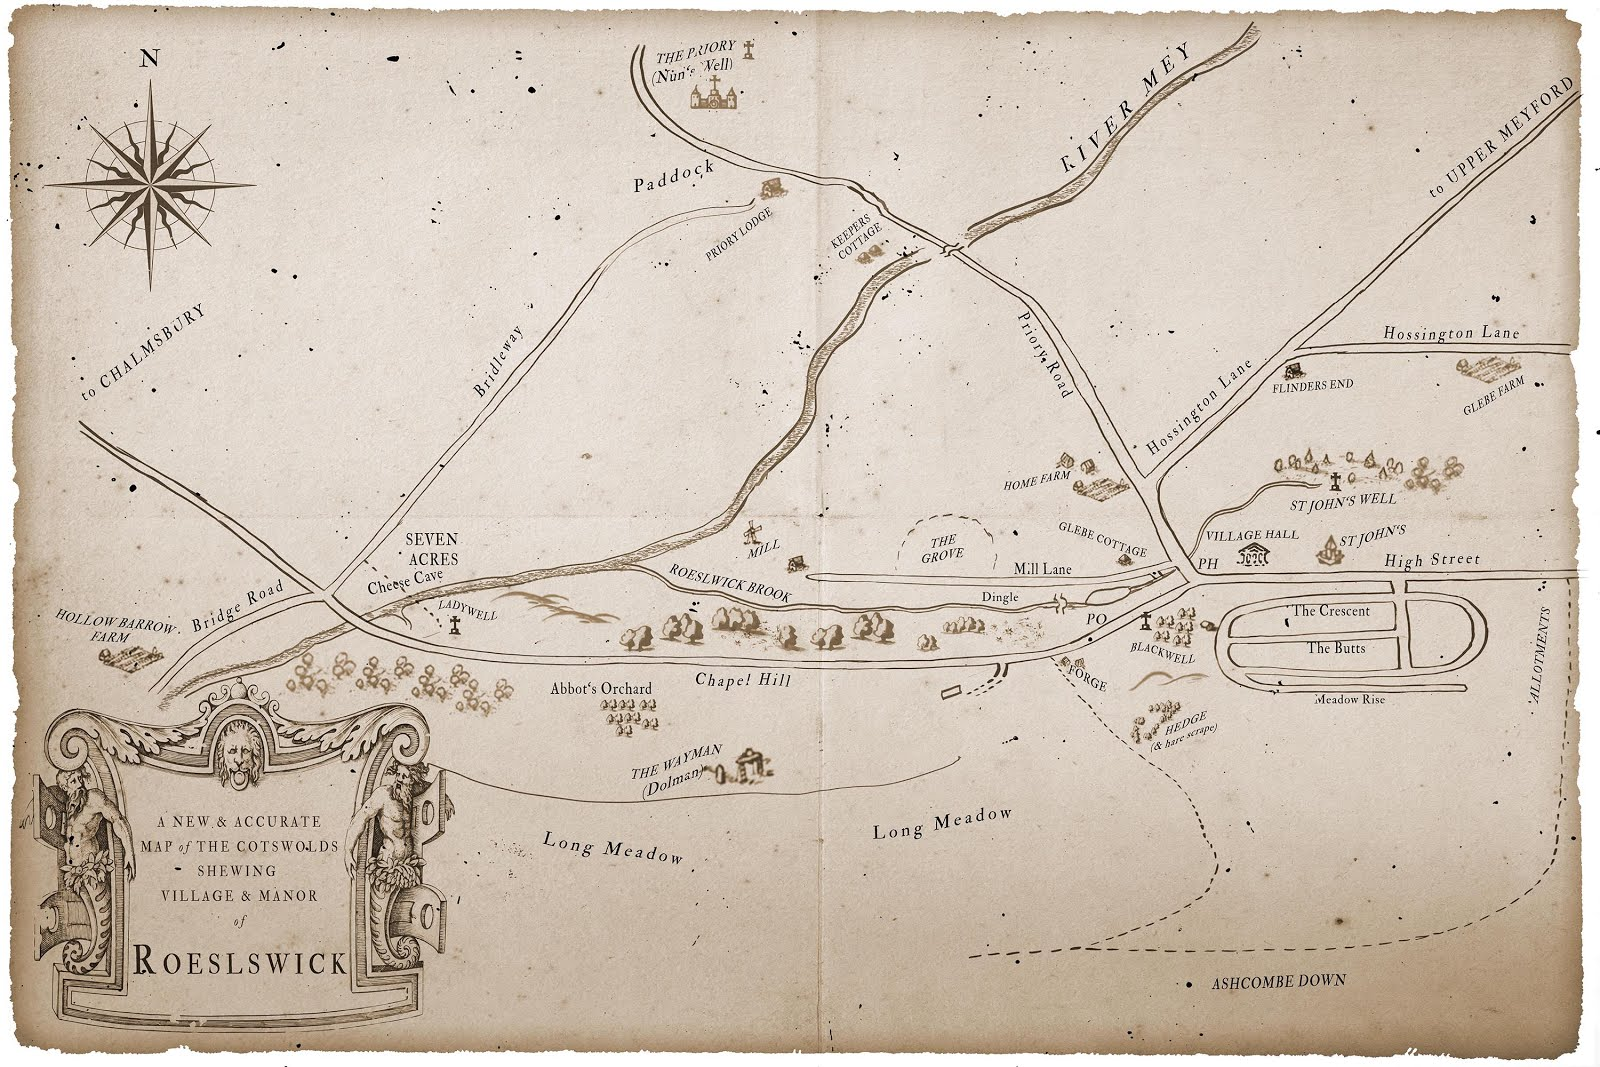 A map of Roelswick